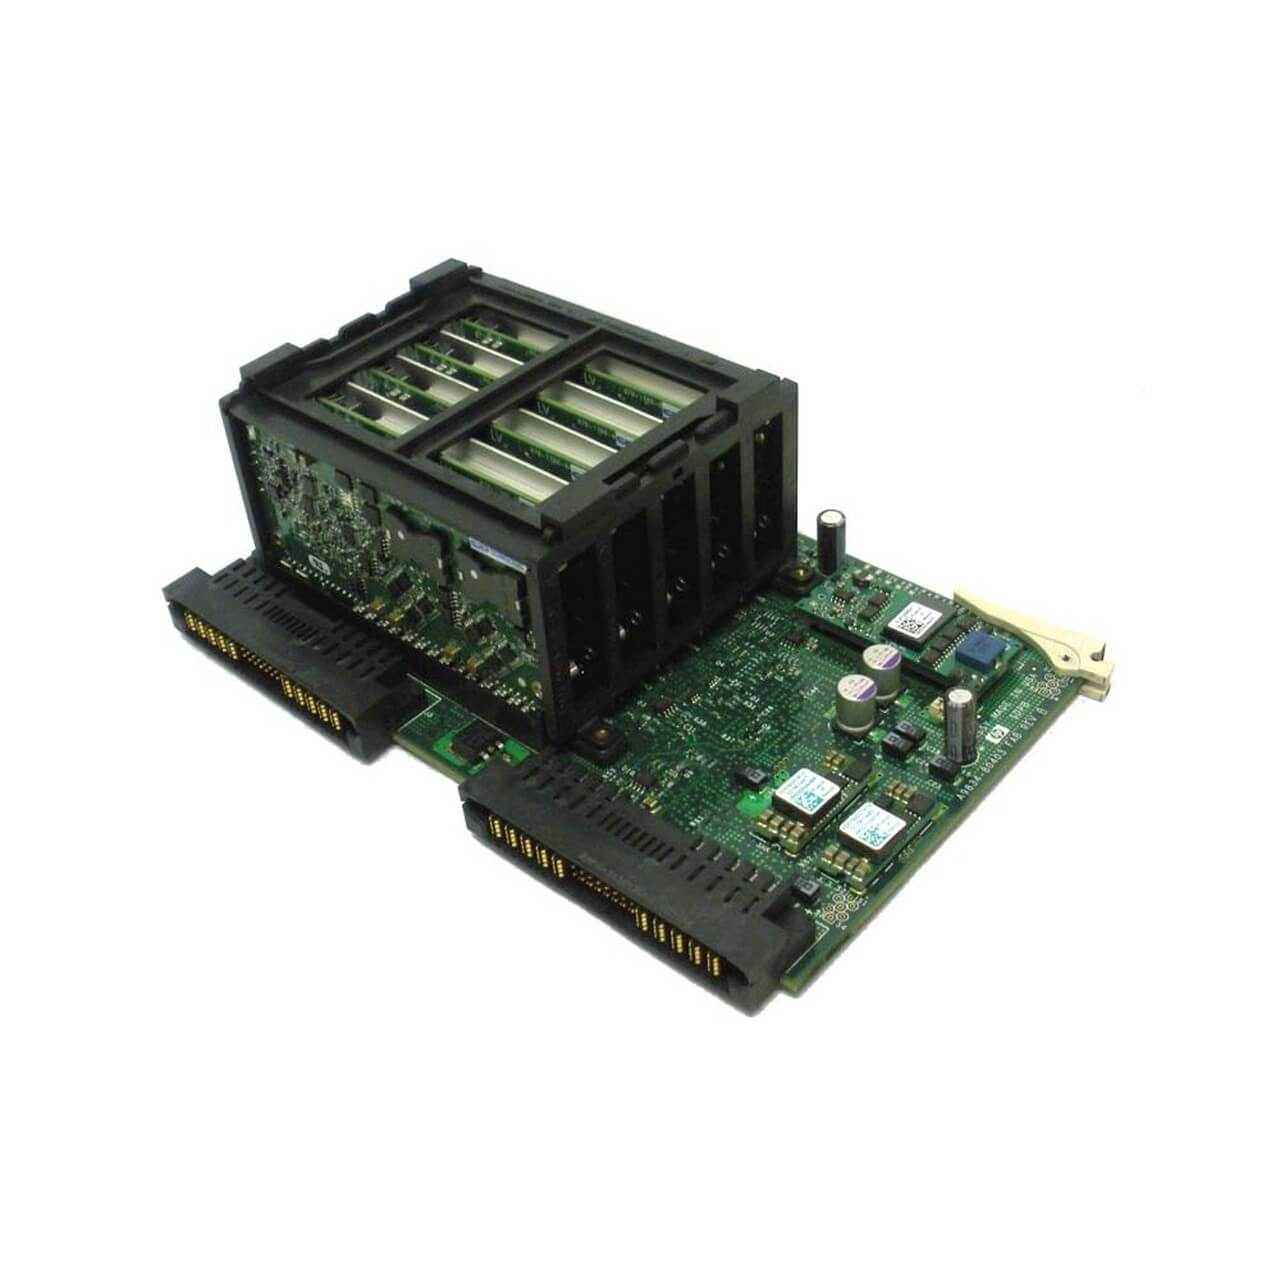 Buy & save on refurbished computer server HP backplanes from your trusted partners at Flagship Technologies.